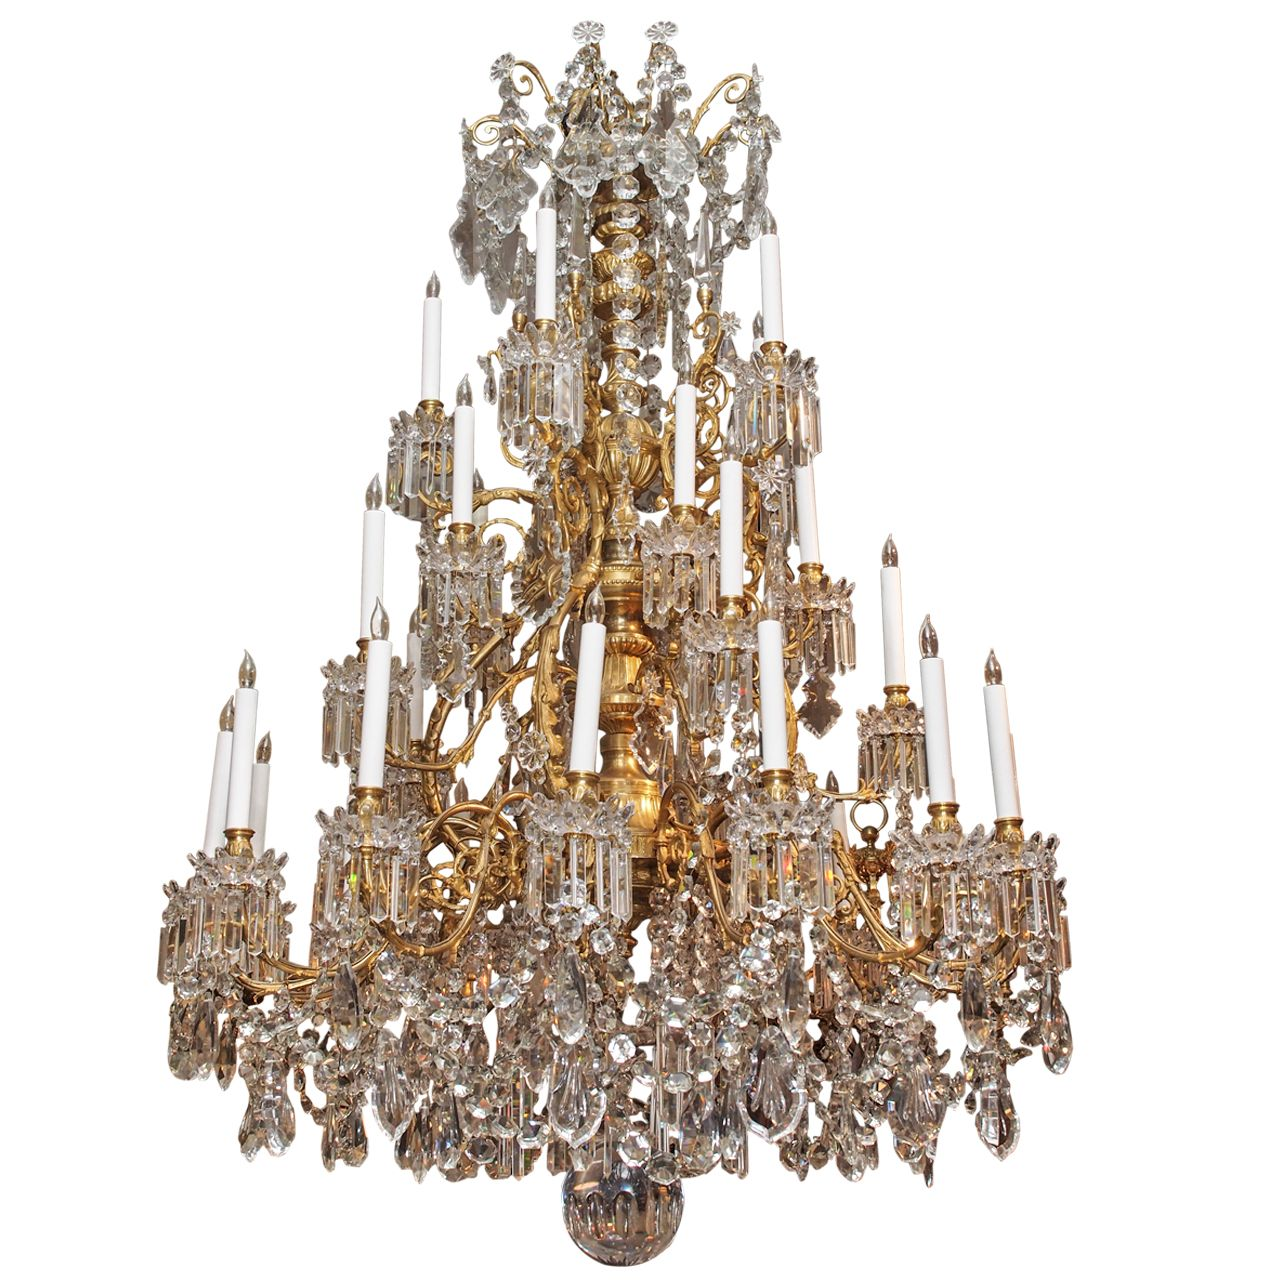 1stdibs.com | Magnificent Antique French Baccarat Crystal Chandelier circa  1850-1870 - Magnificent Antique French Baccarat Crystal Chandelier Circa 1850